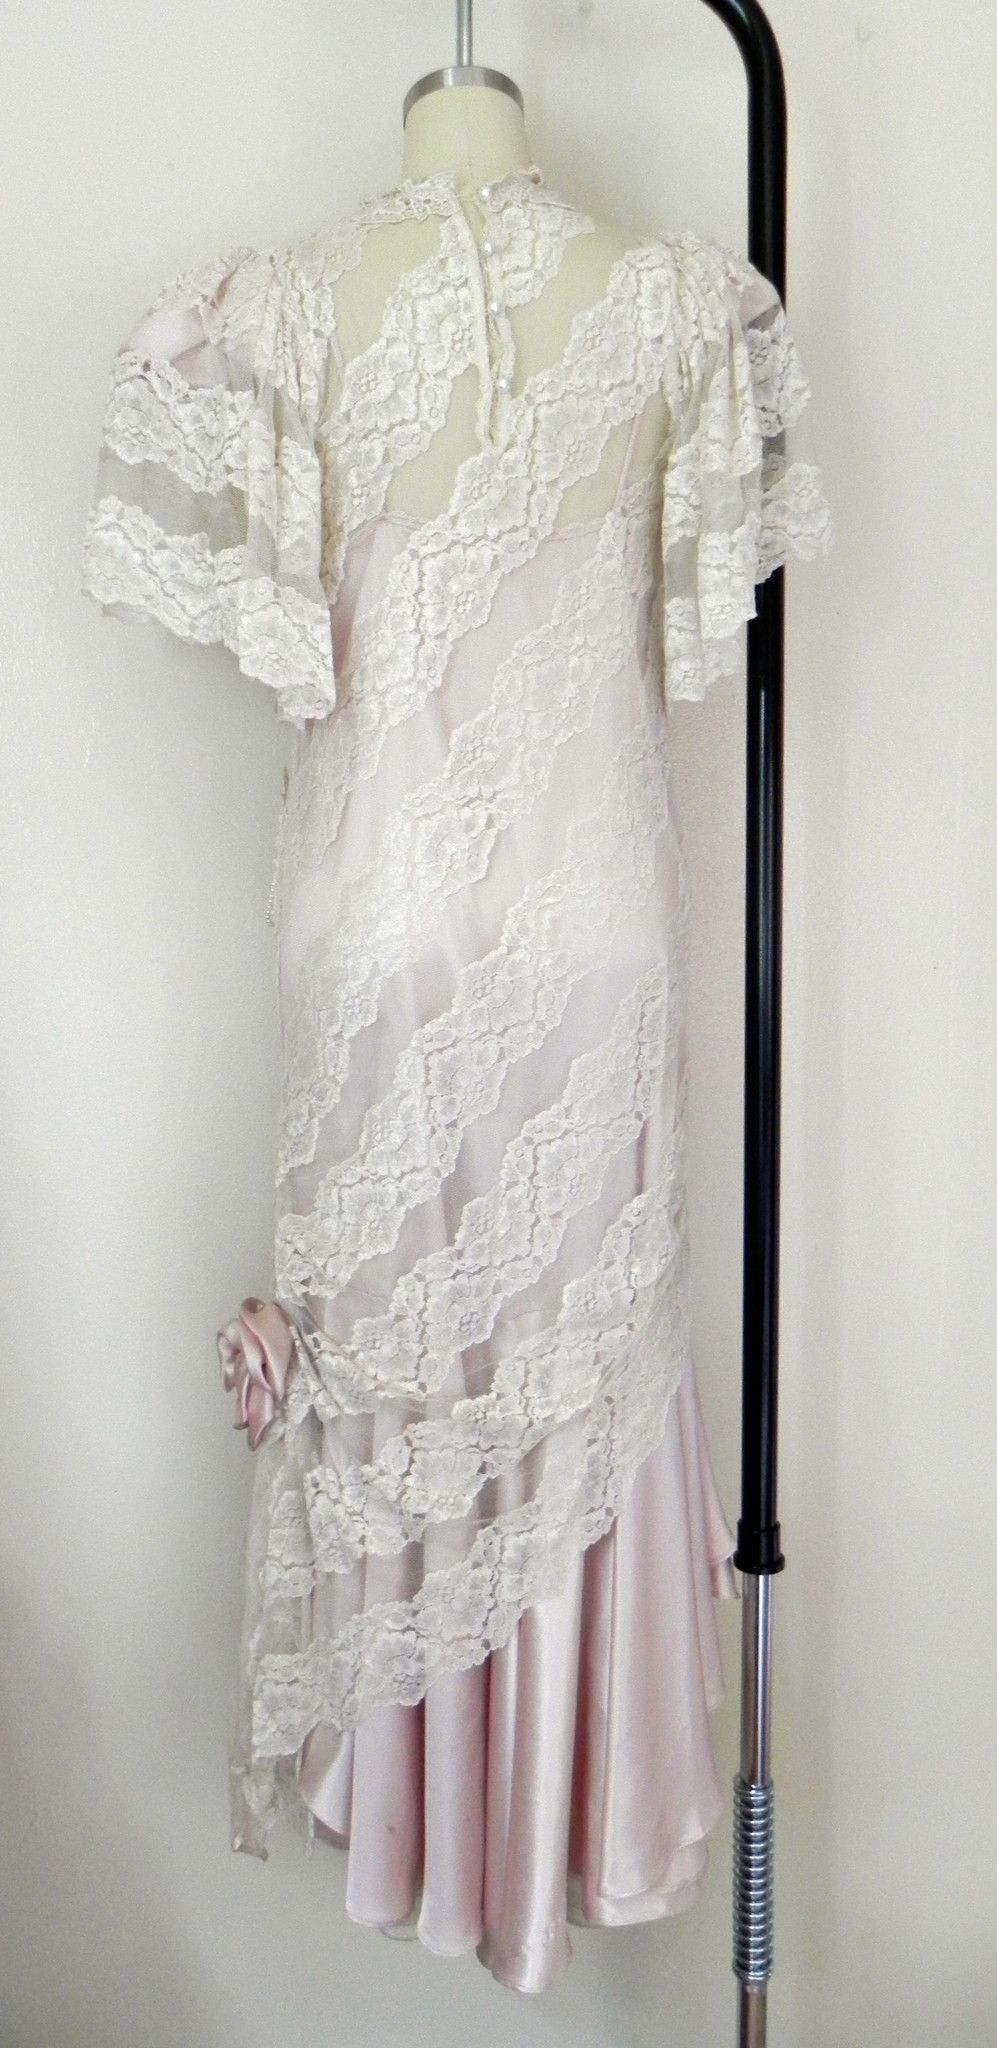 Vintage lace white pink wedding dress formal party dress